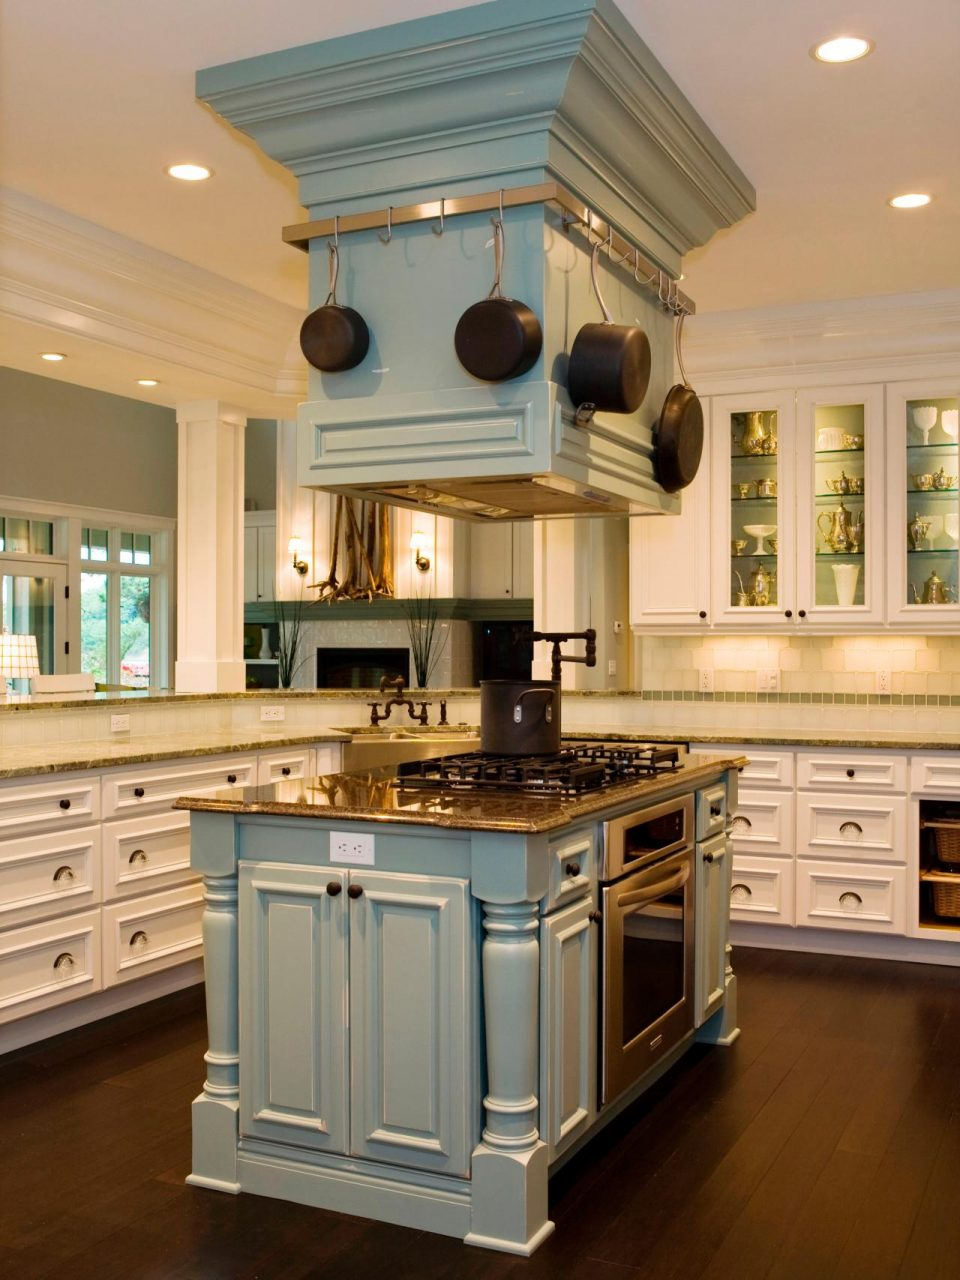 Kitchen Island Vent Hood Kitchen Island With Stove And Vent Hood